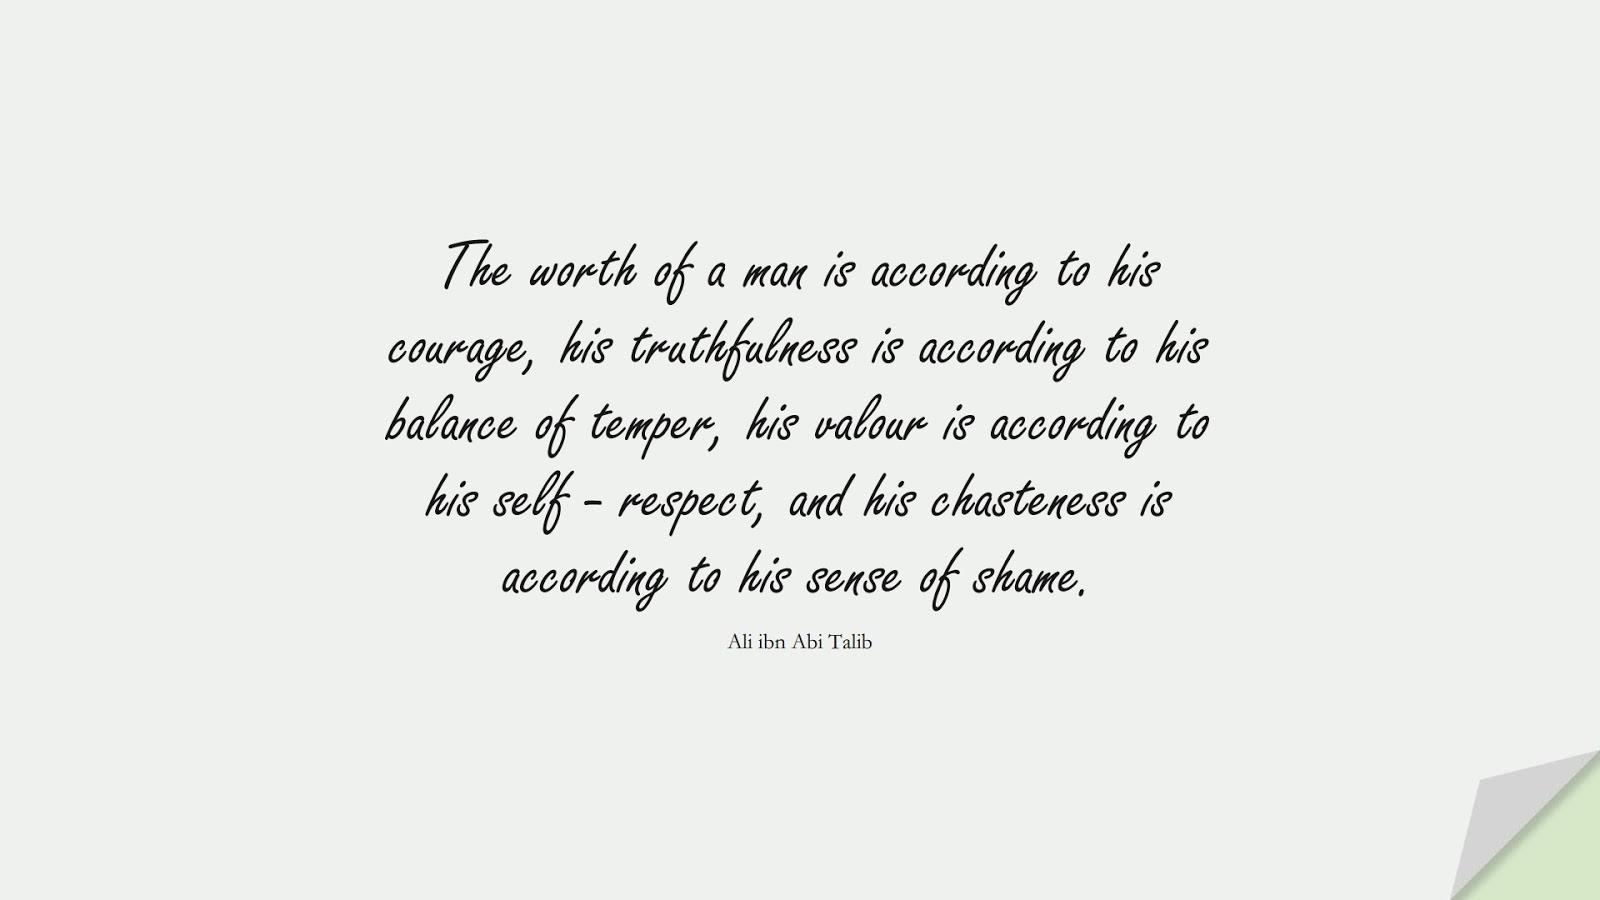 The worth of a man is according to his courage, his truthfulness is according to his balance of temper, his valour is according to his self - respect, and his chasteness is according to his sense of shame. (Ali ibn Abi Talib);  #AliQuotes